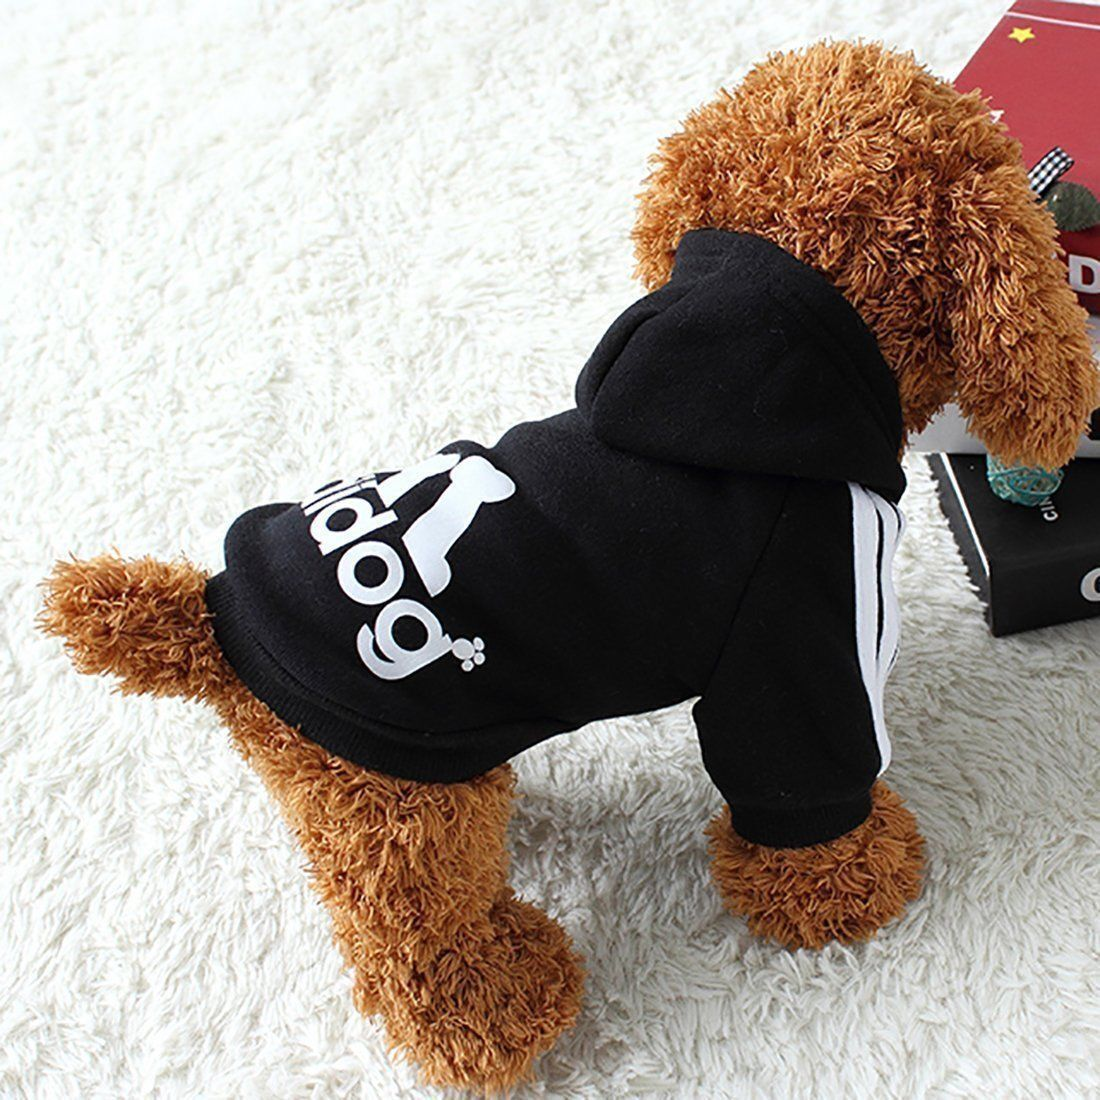 New XS-3XL Pet Winter Coat Dog Warm Clothing Casual Cat Puppy Hoodie Sweater 5